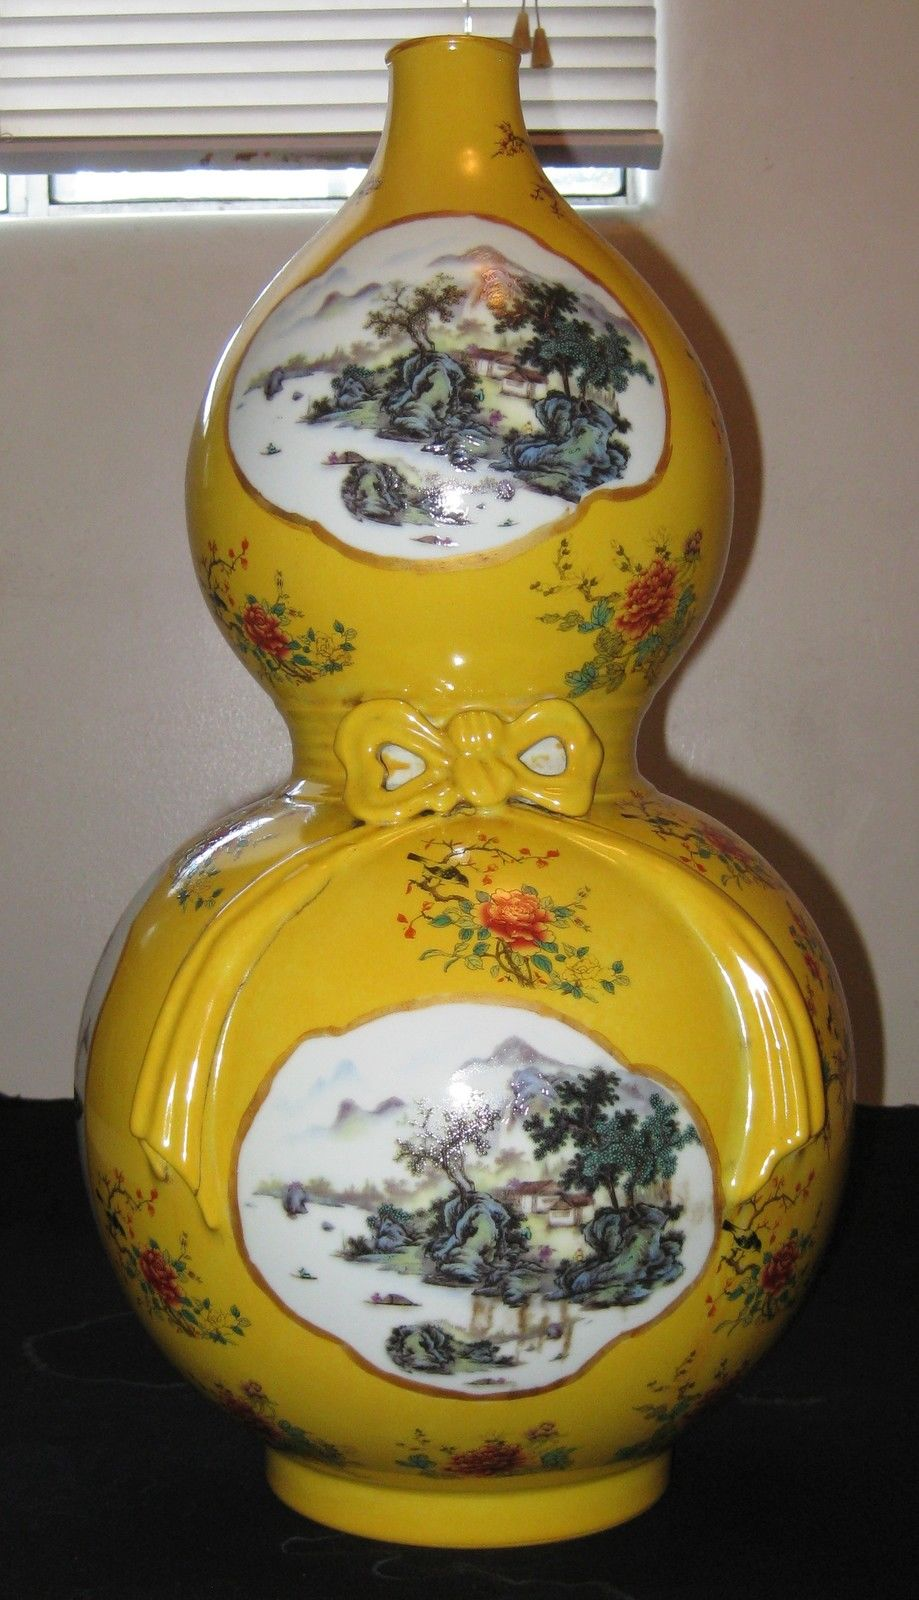 ANTIQUE CHINESE PORCELAIN FAMILLE ROSE & BIRDS FLOWER GOURD VASE, 19TH C.